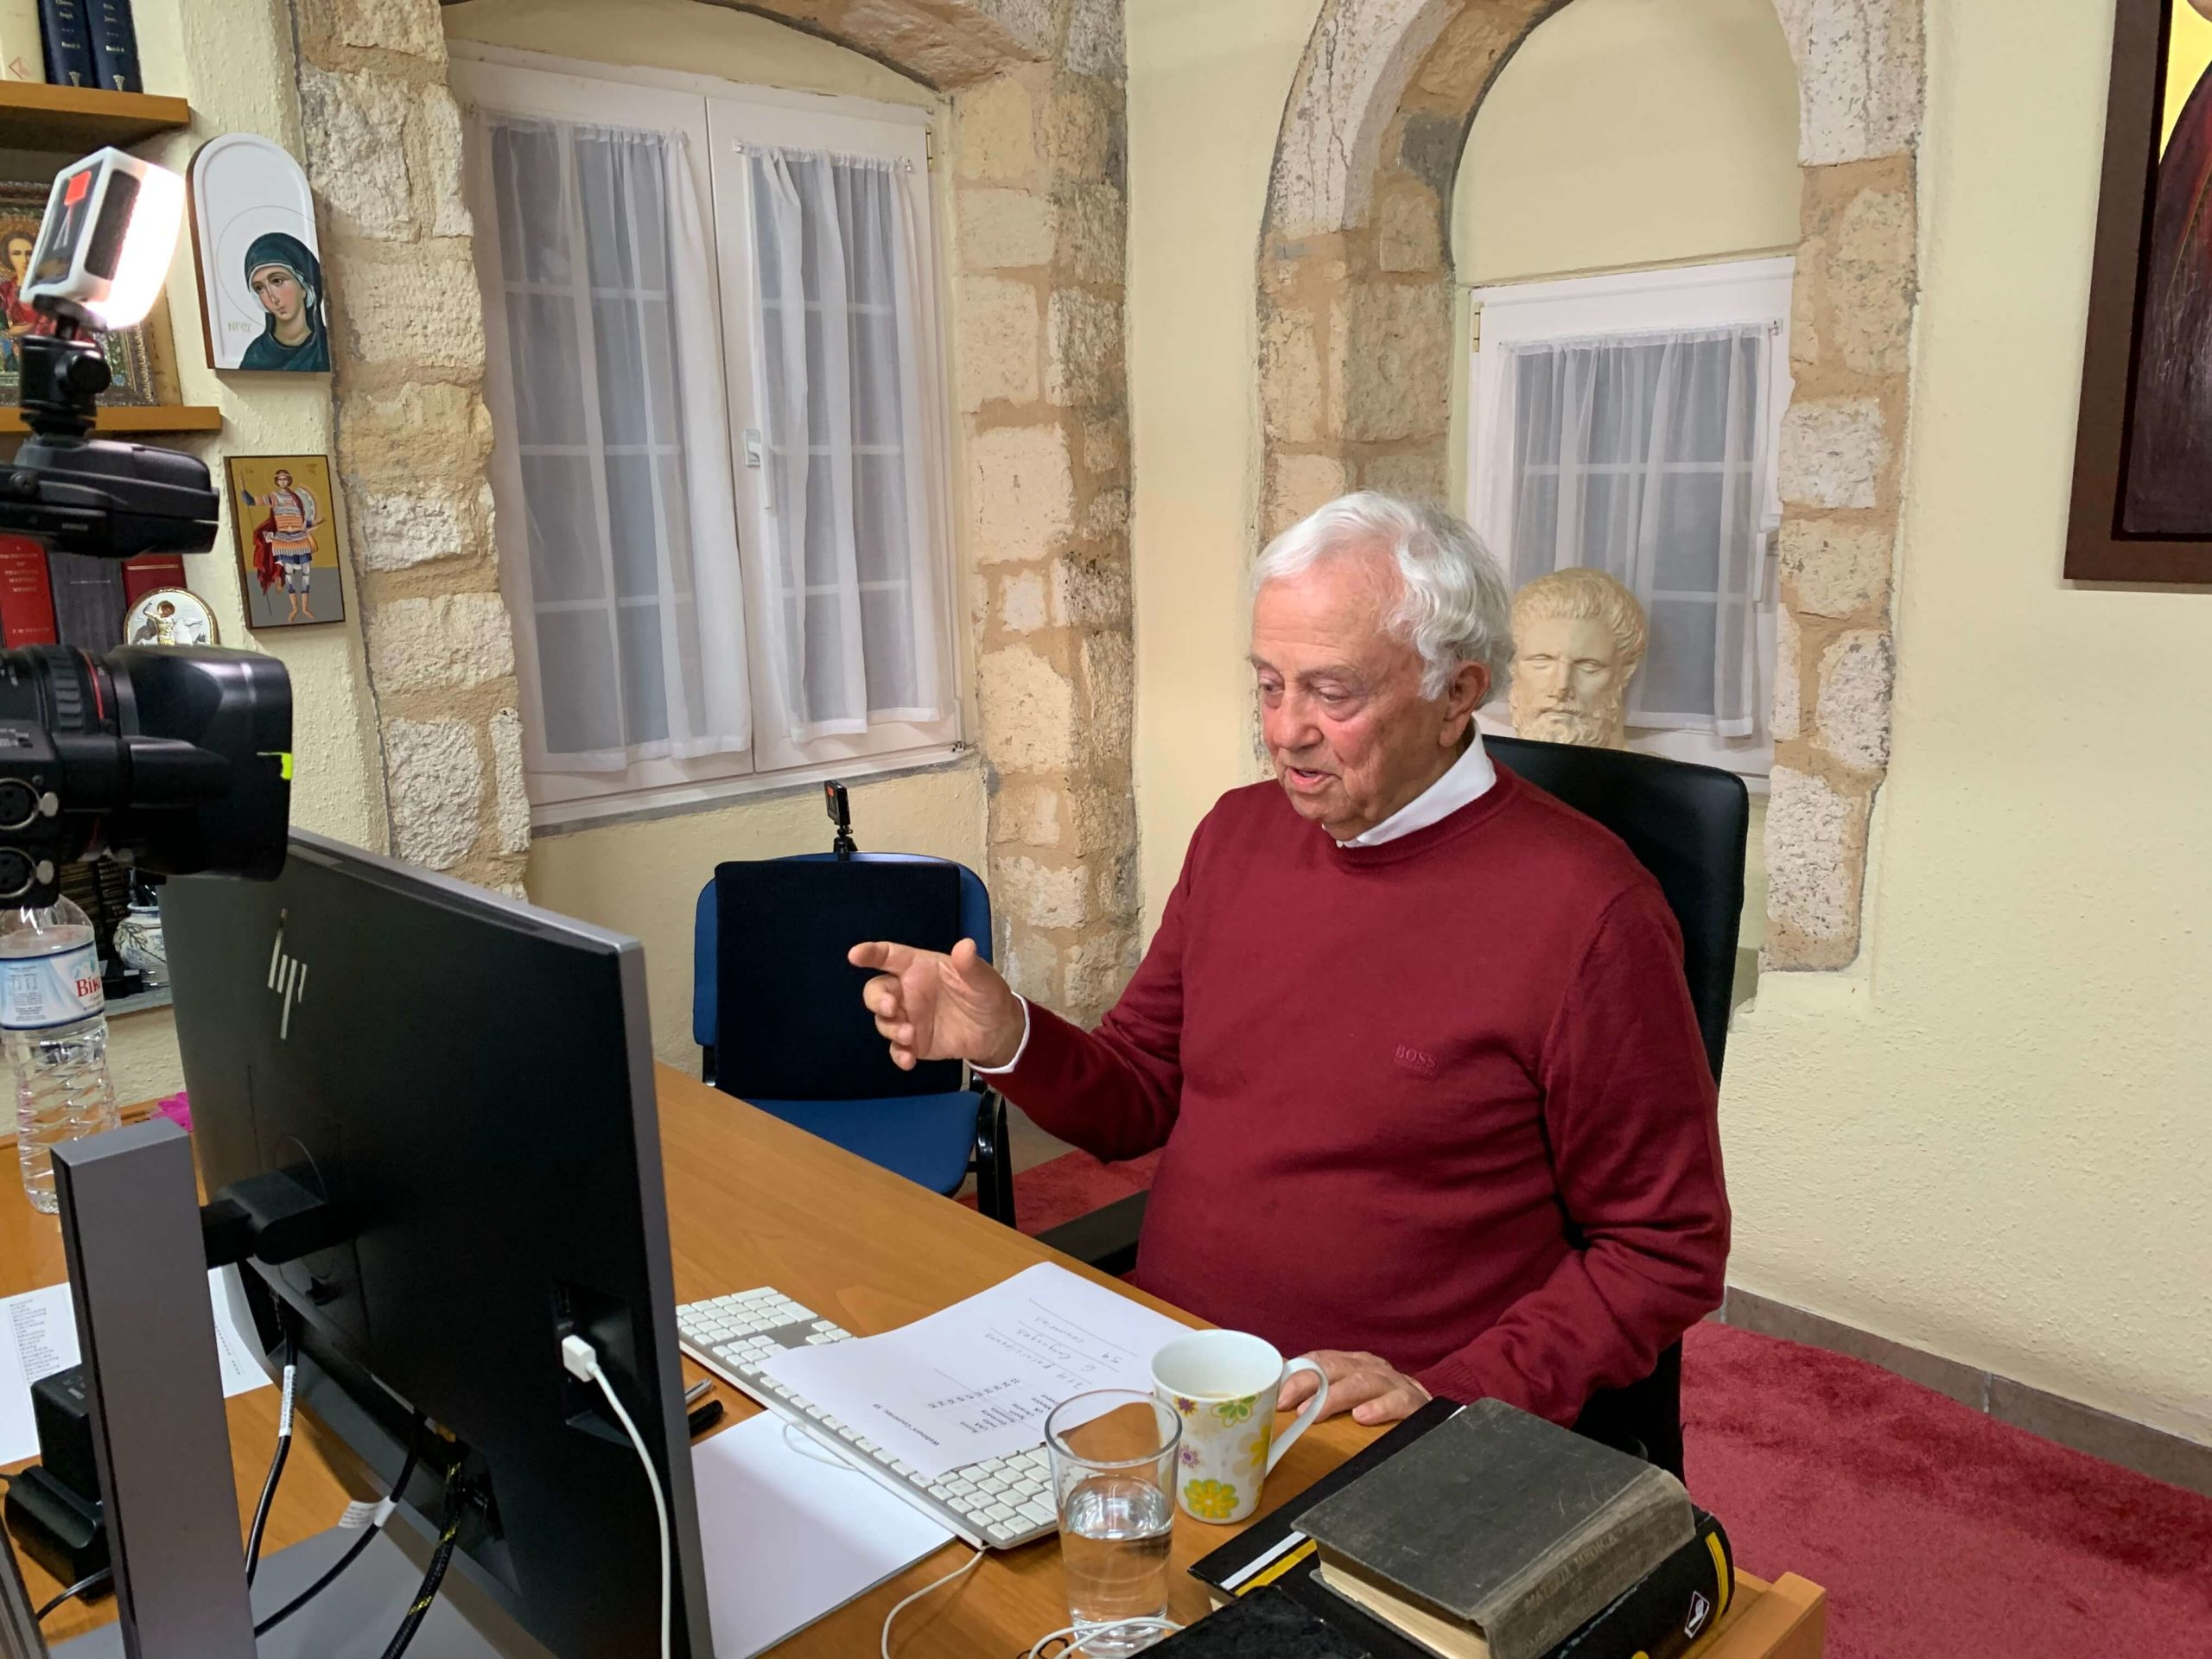 A MEMORABLE RENDEZVOUS WITH PROF. GEORGE VITHOULKAS